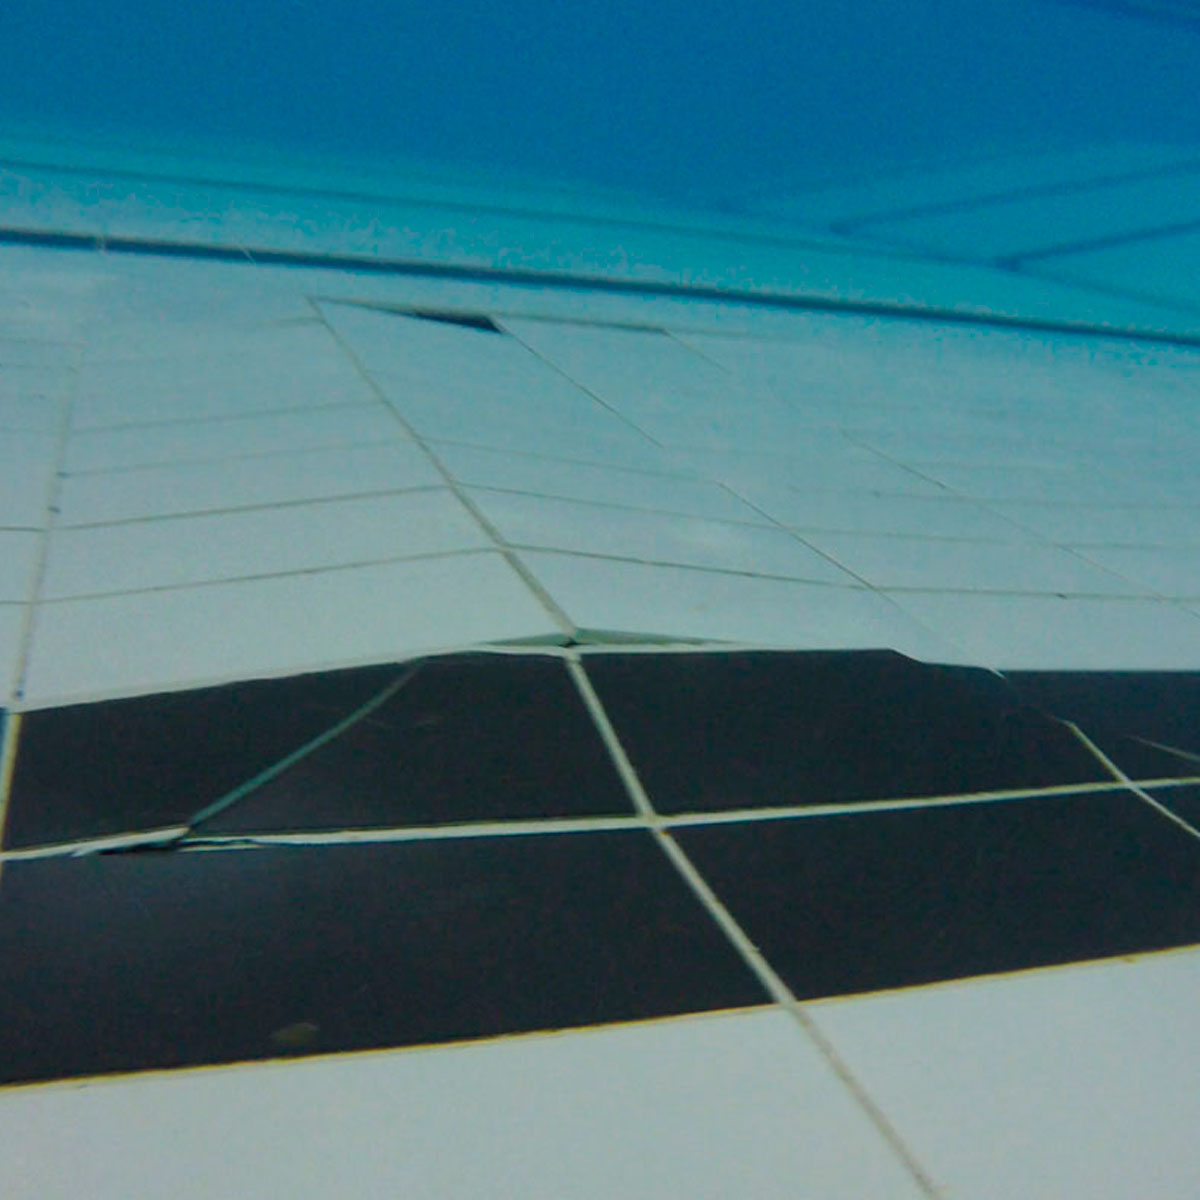 Blown Tiles In A Swimming Pool | Underwater Tiling and Grouting | Access Underwater UK